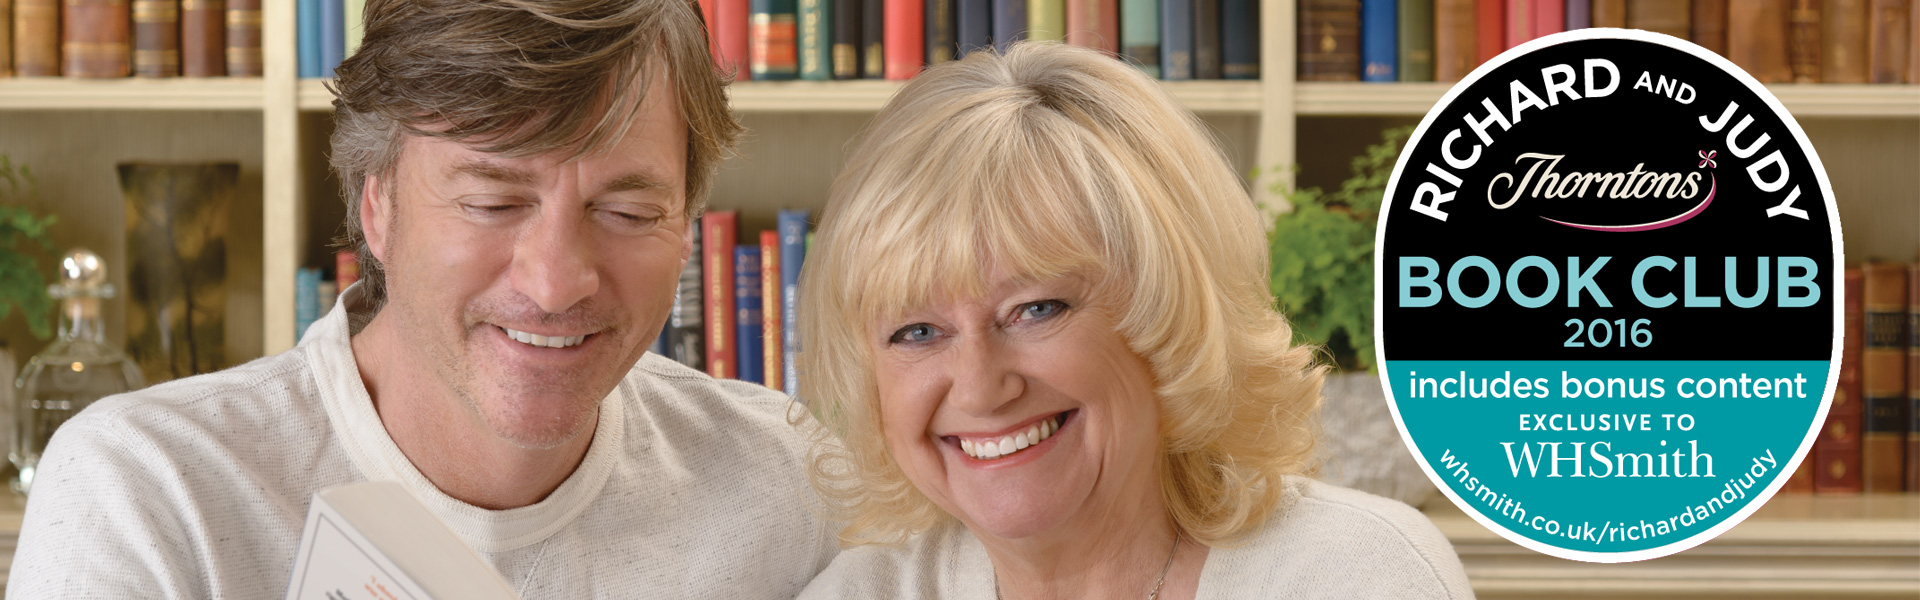 The Richard and Judy Book Club Summer 2016 – Welcome